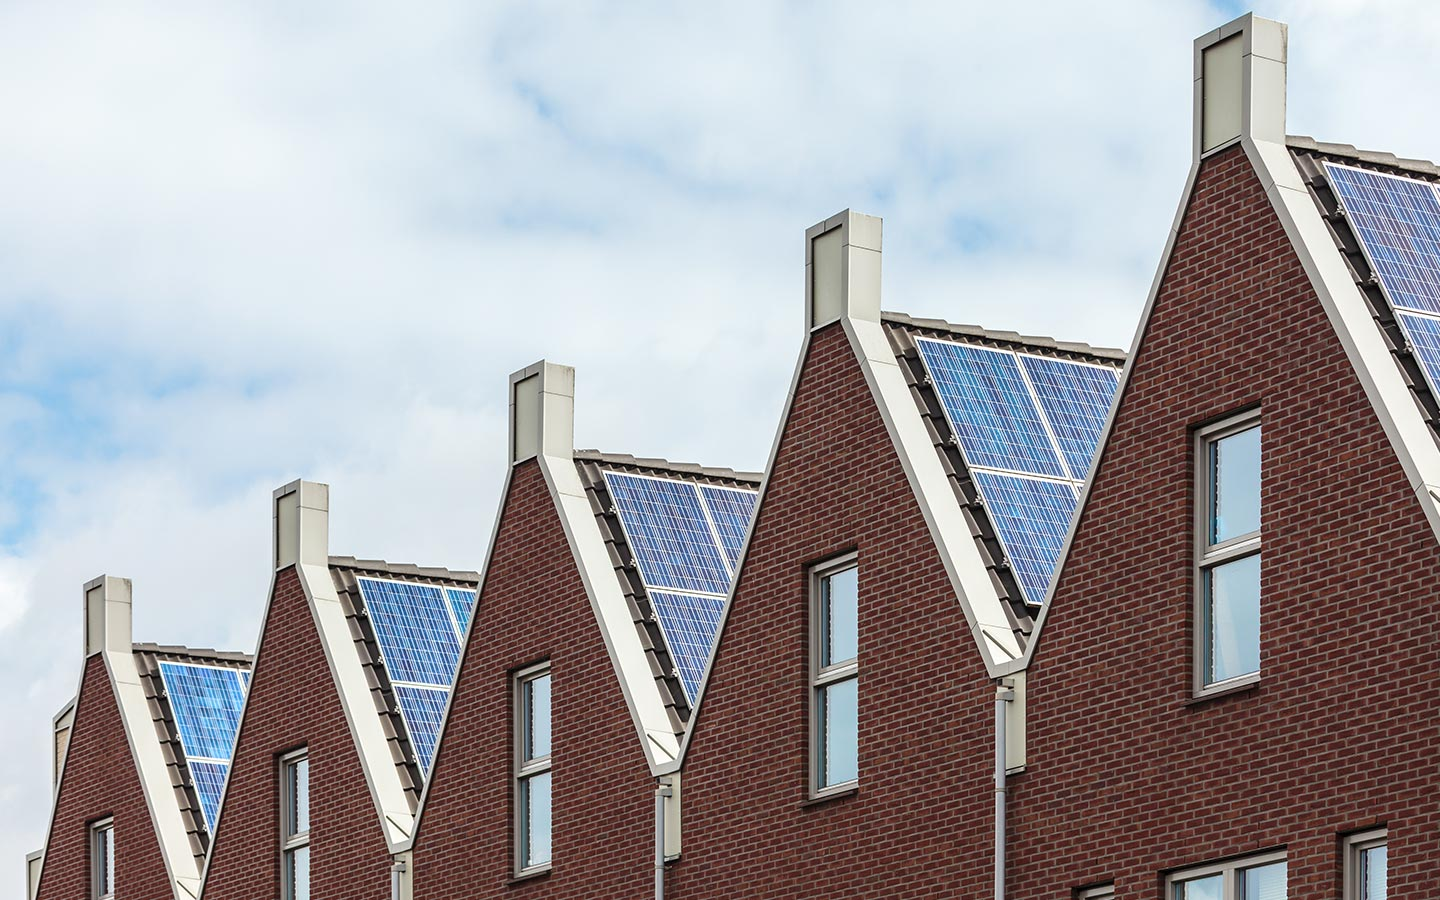 Eco-friendly homes are other benefits of living in a gated community.